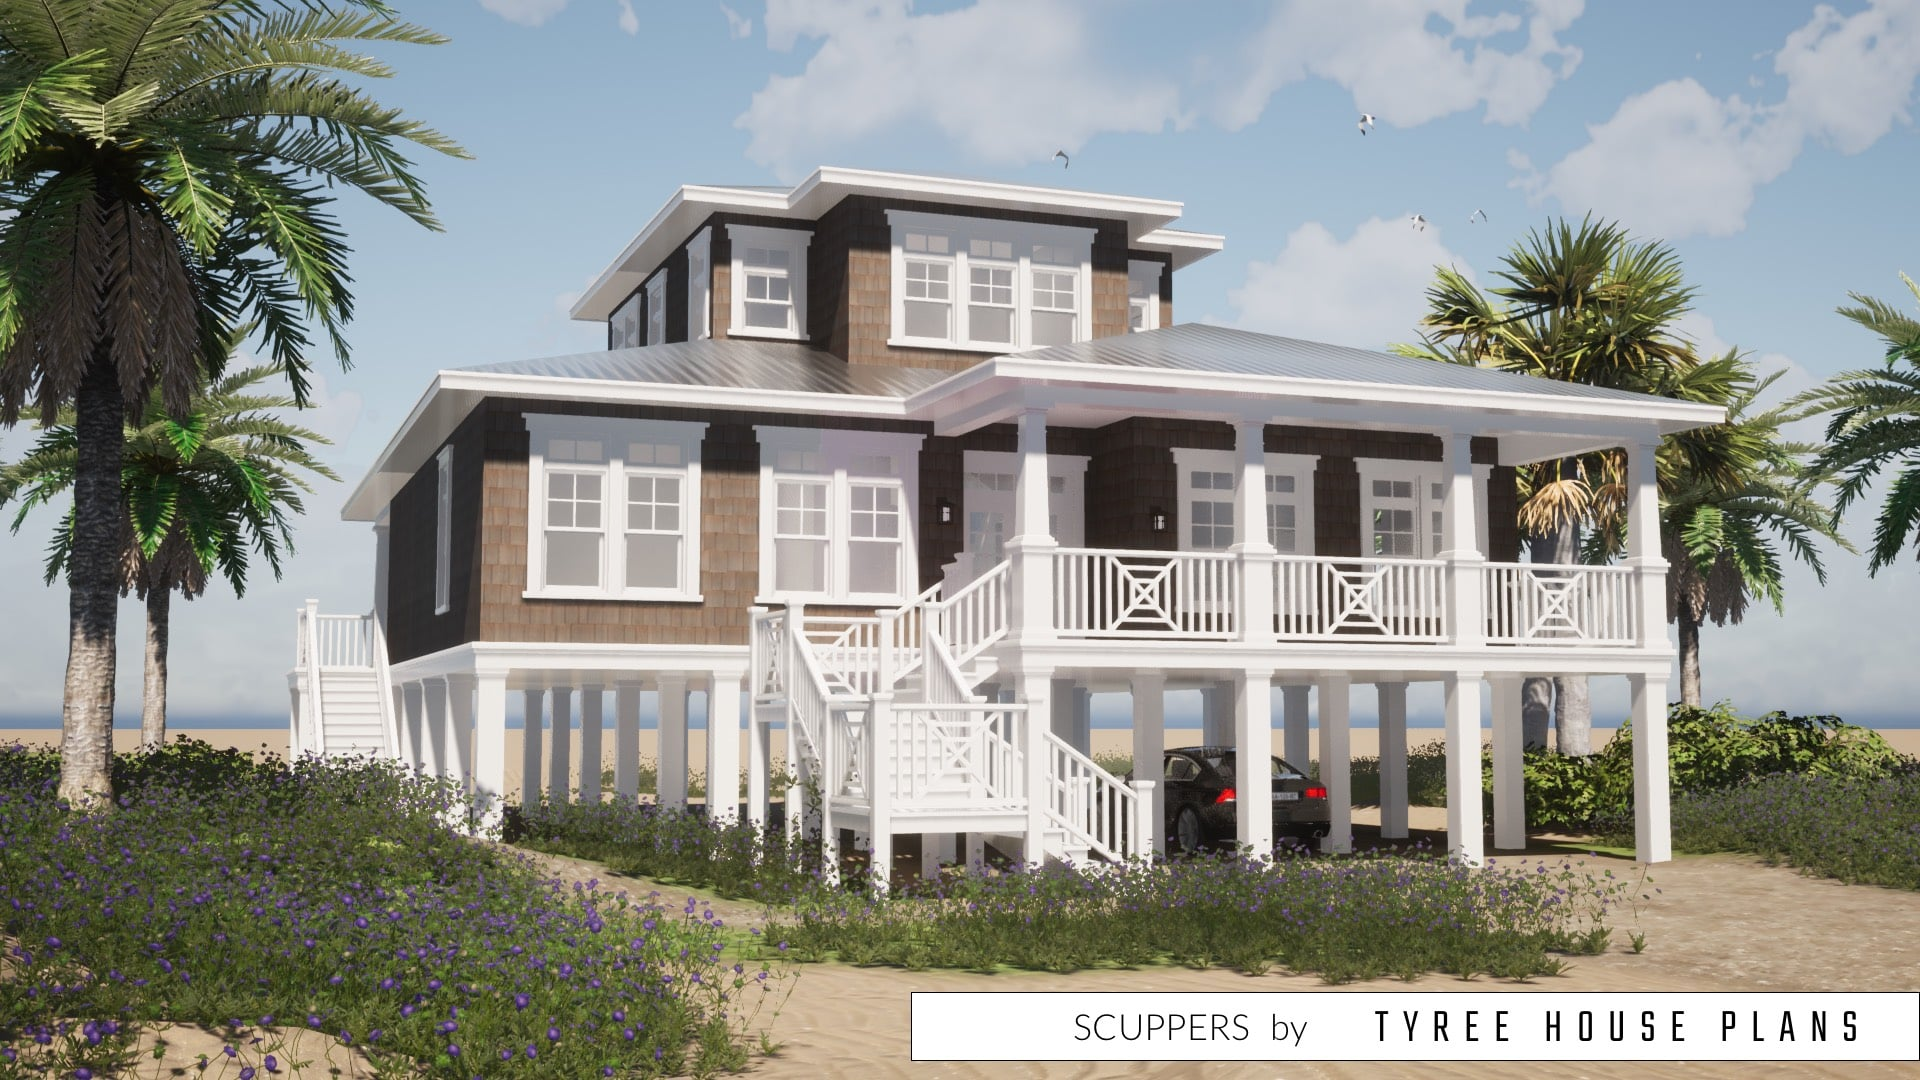 Scuppers House Plan by Tyree House Plans